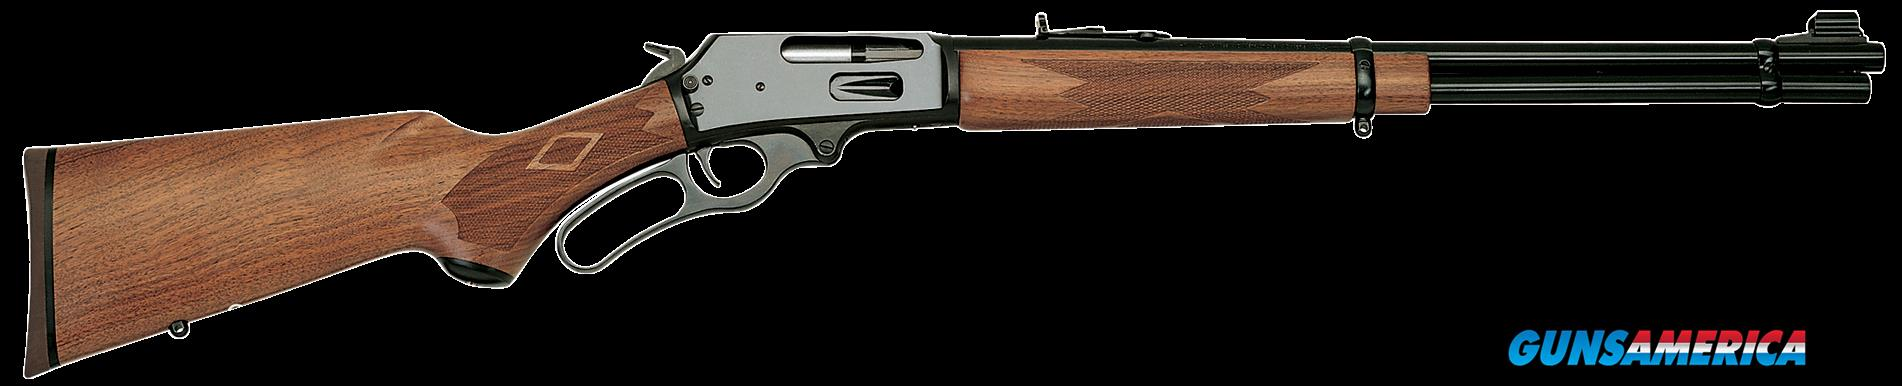 "Marlin 70504 336 Lever 30-30 Win 20"" 6+1 Black Walnut Stk Blued  Guns > Rifles > MN Misc Rifles"